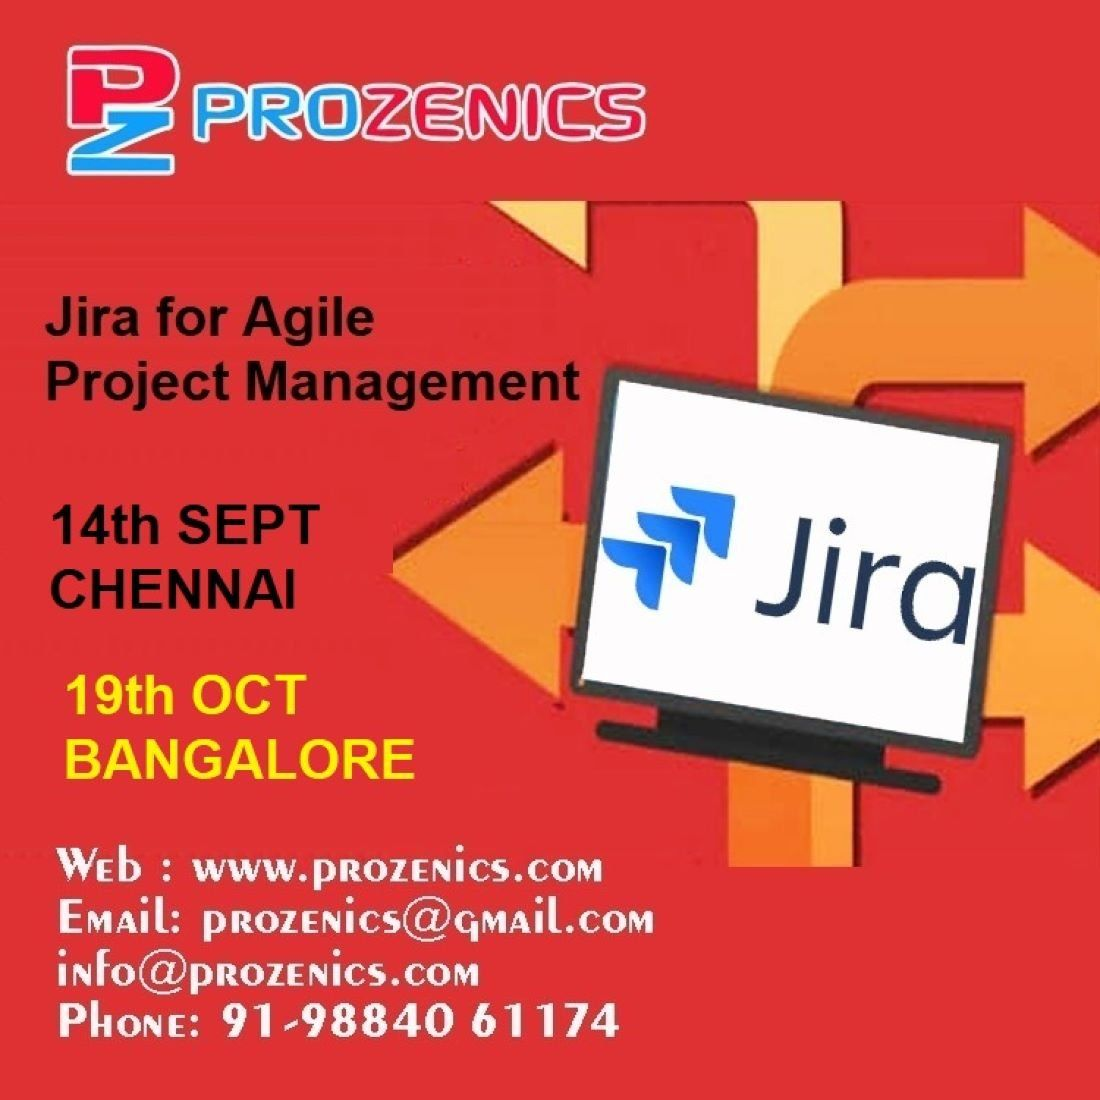 JIRA for Agile Project Management